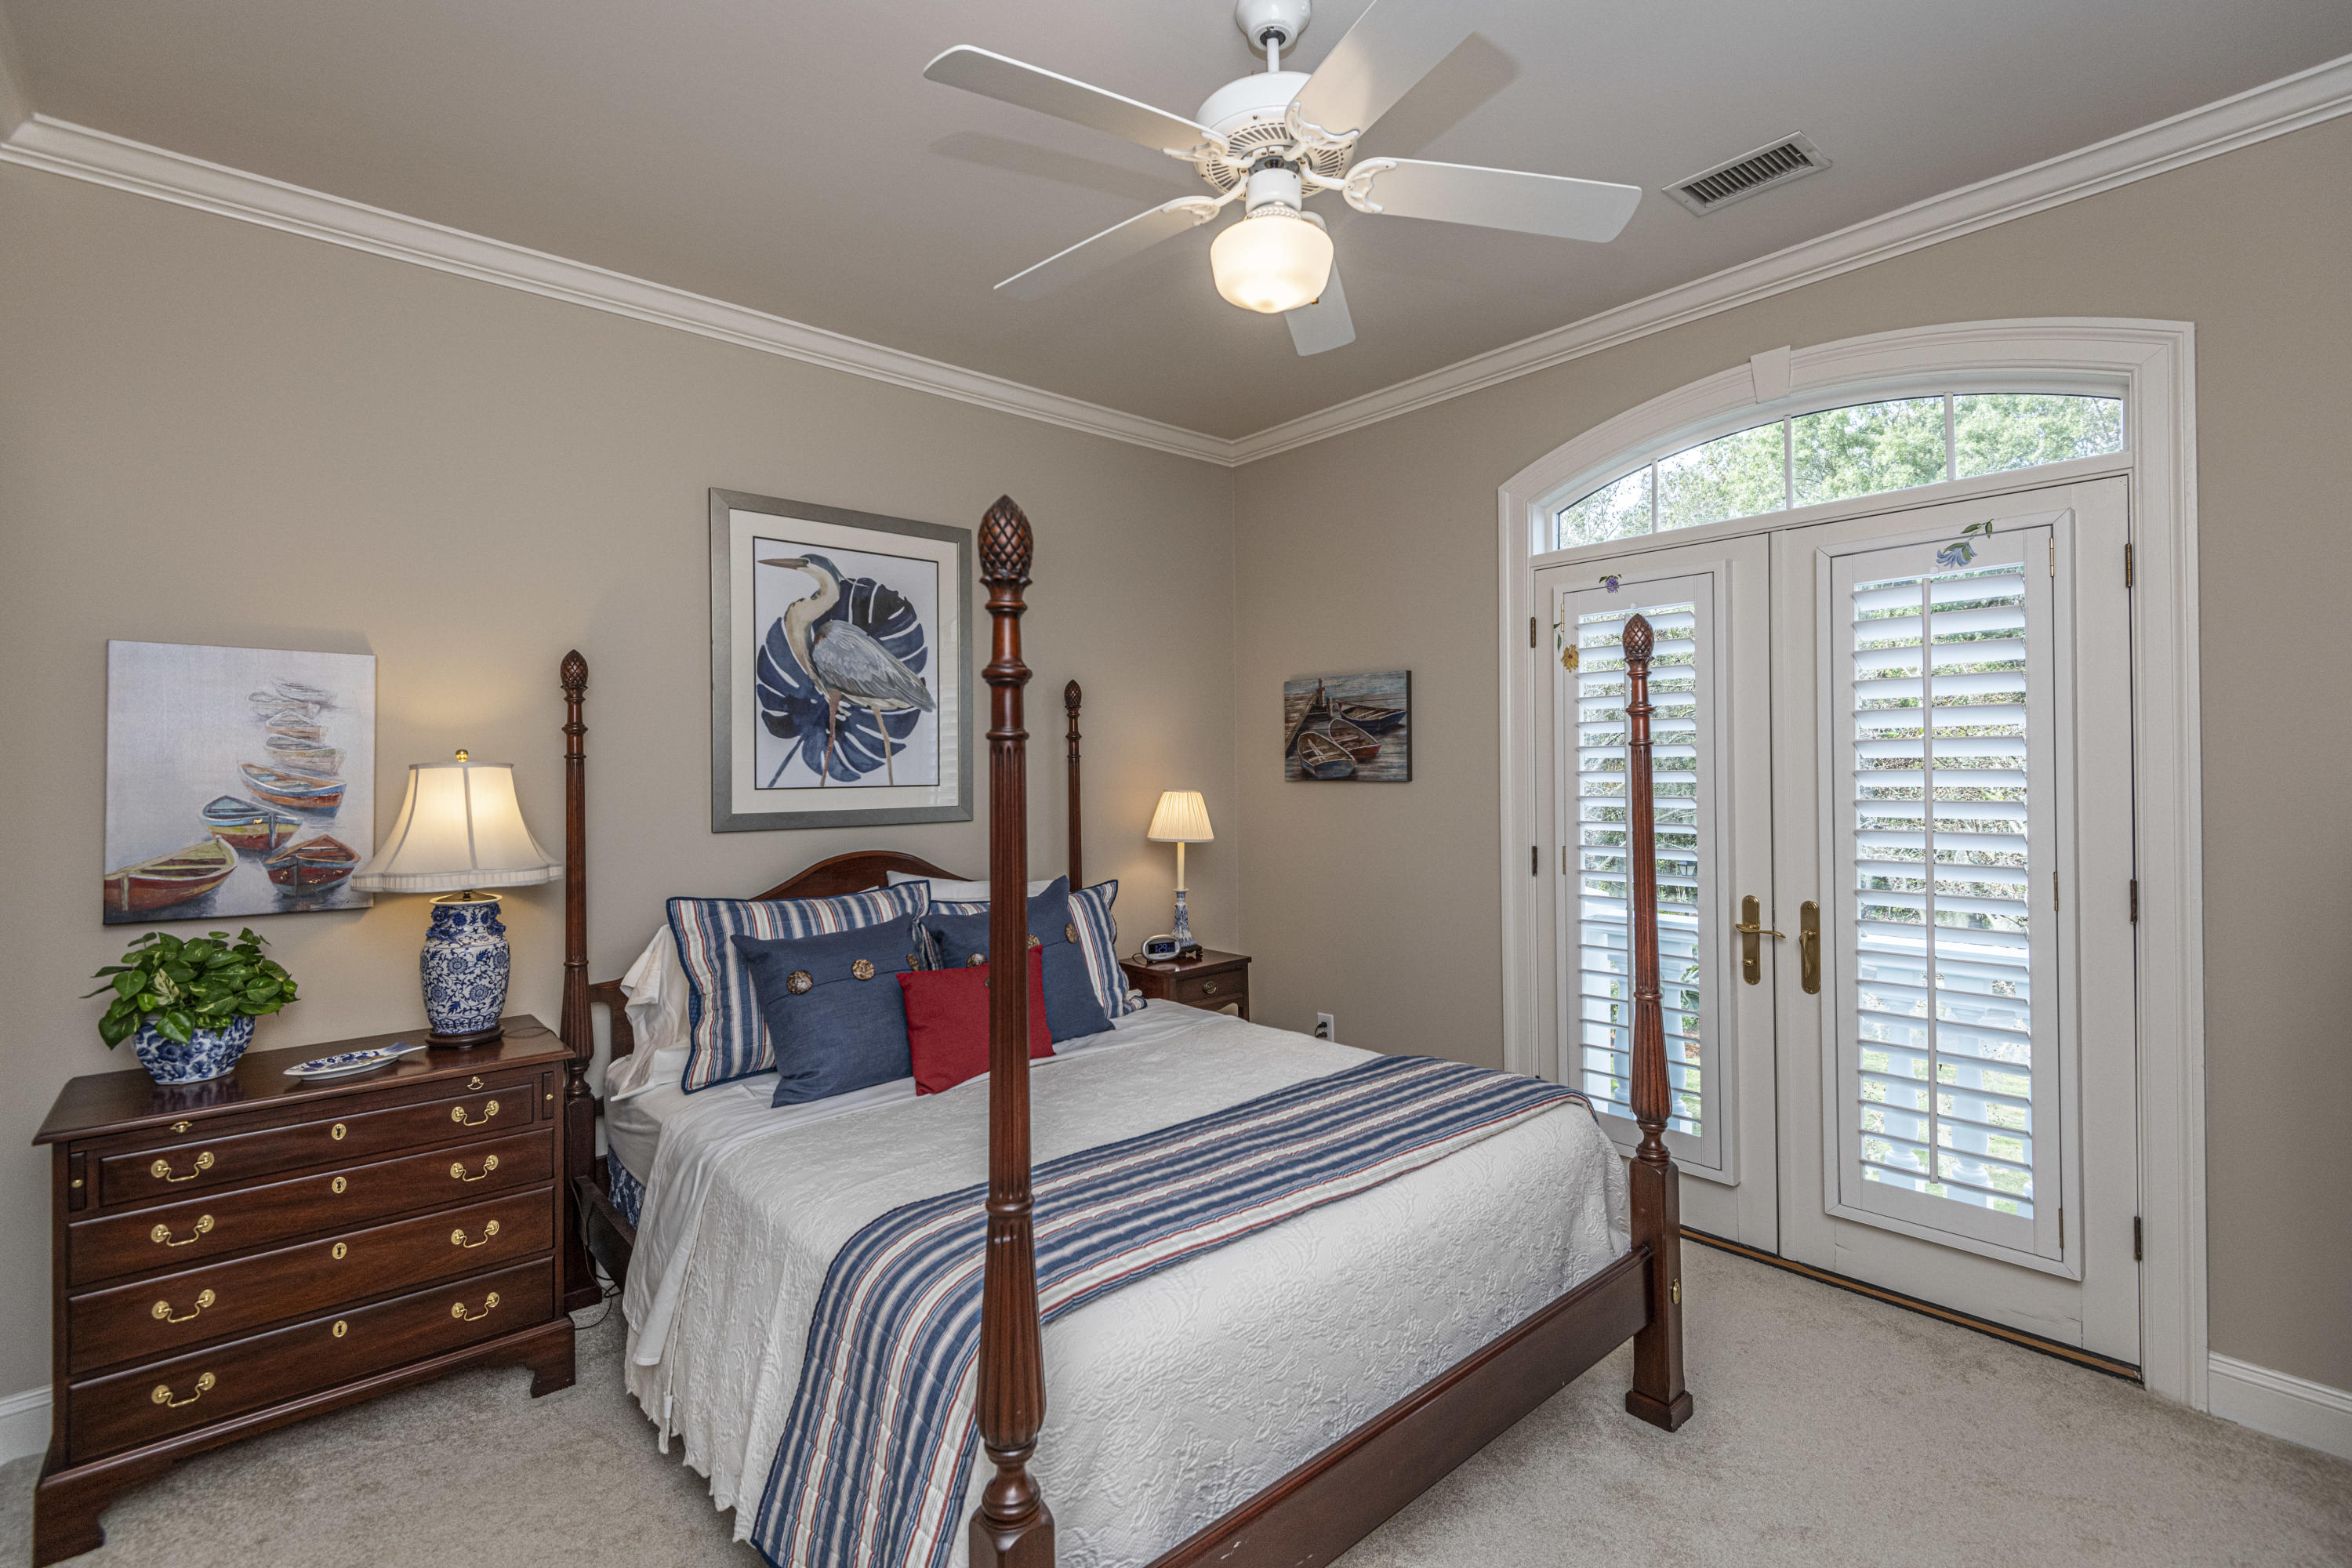 Coosaw Creek Country Club Homes For Sale - 8642 Fairway Woods, North Charleston, SC - 49